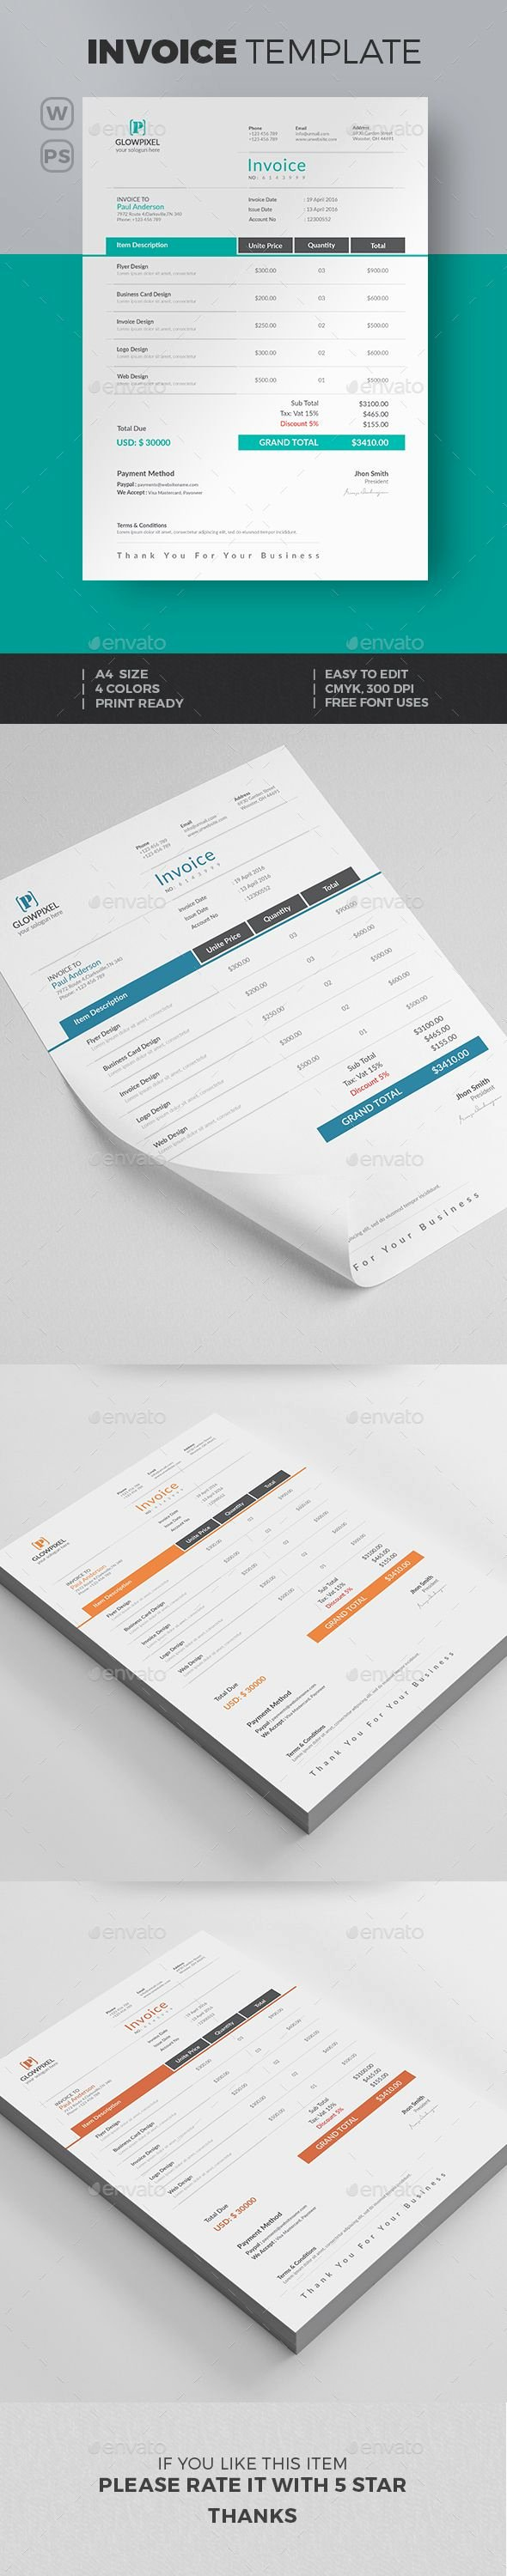 Graphic Design Quote Template New Pin by Best Graphic Design On Proposal & Invoice Templates